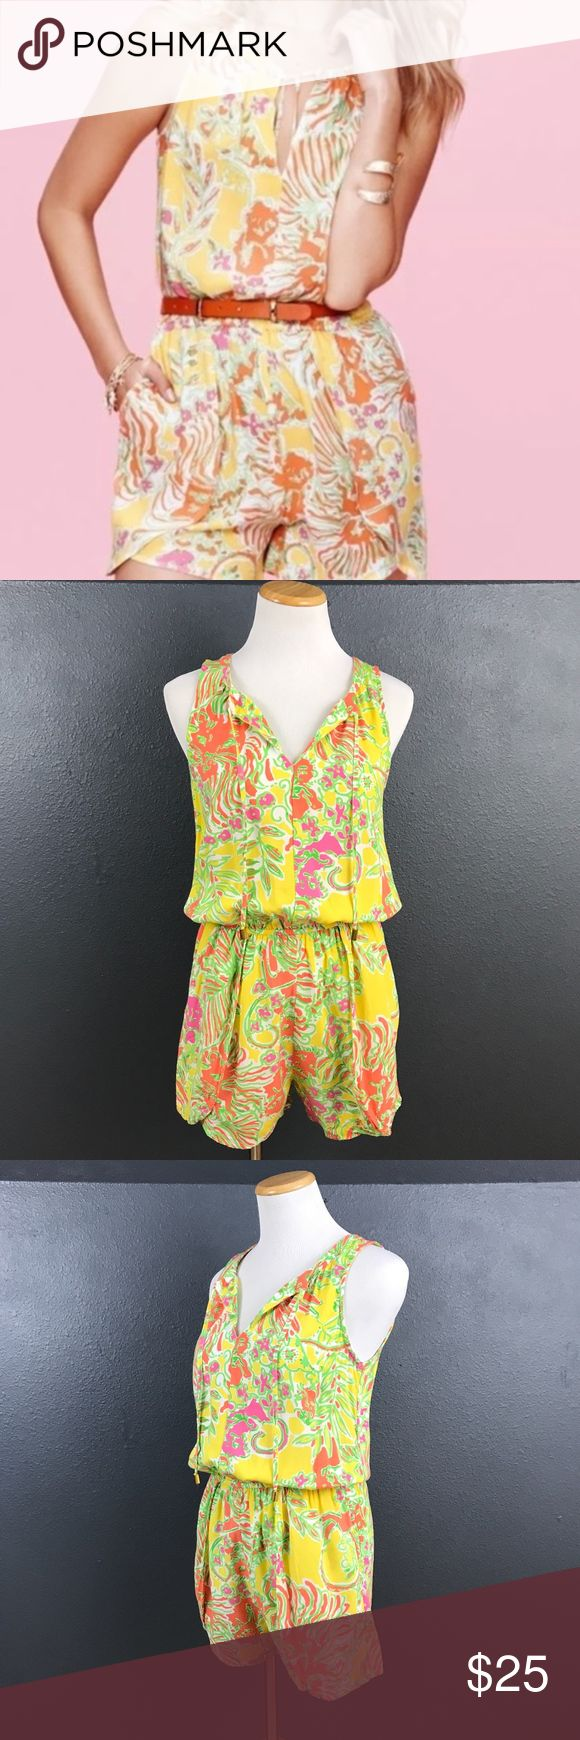 """Lilly Pulitzer for Target Romper Lilly Pulitzer for Target Romper. Tie front detail. Keyhole back with button closure. Elastic waist. Pockets. Rayon.Size XS. Fits more like a small. In great condition. A16  Underarm to underarm 17"""" Inseam 3"""" Total length 32"""" Lilly Pulitzer for Target Pants Jumpsuits & Rompers"""